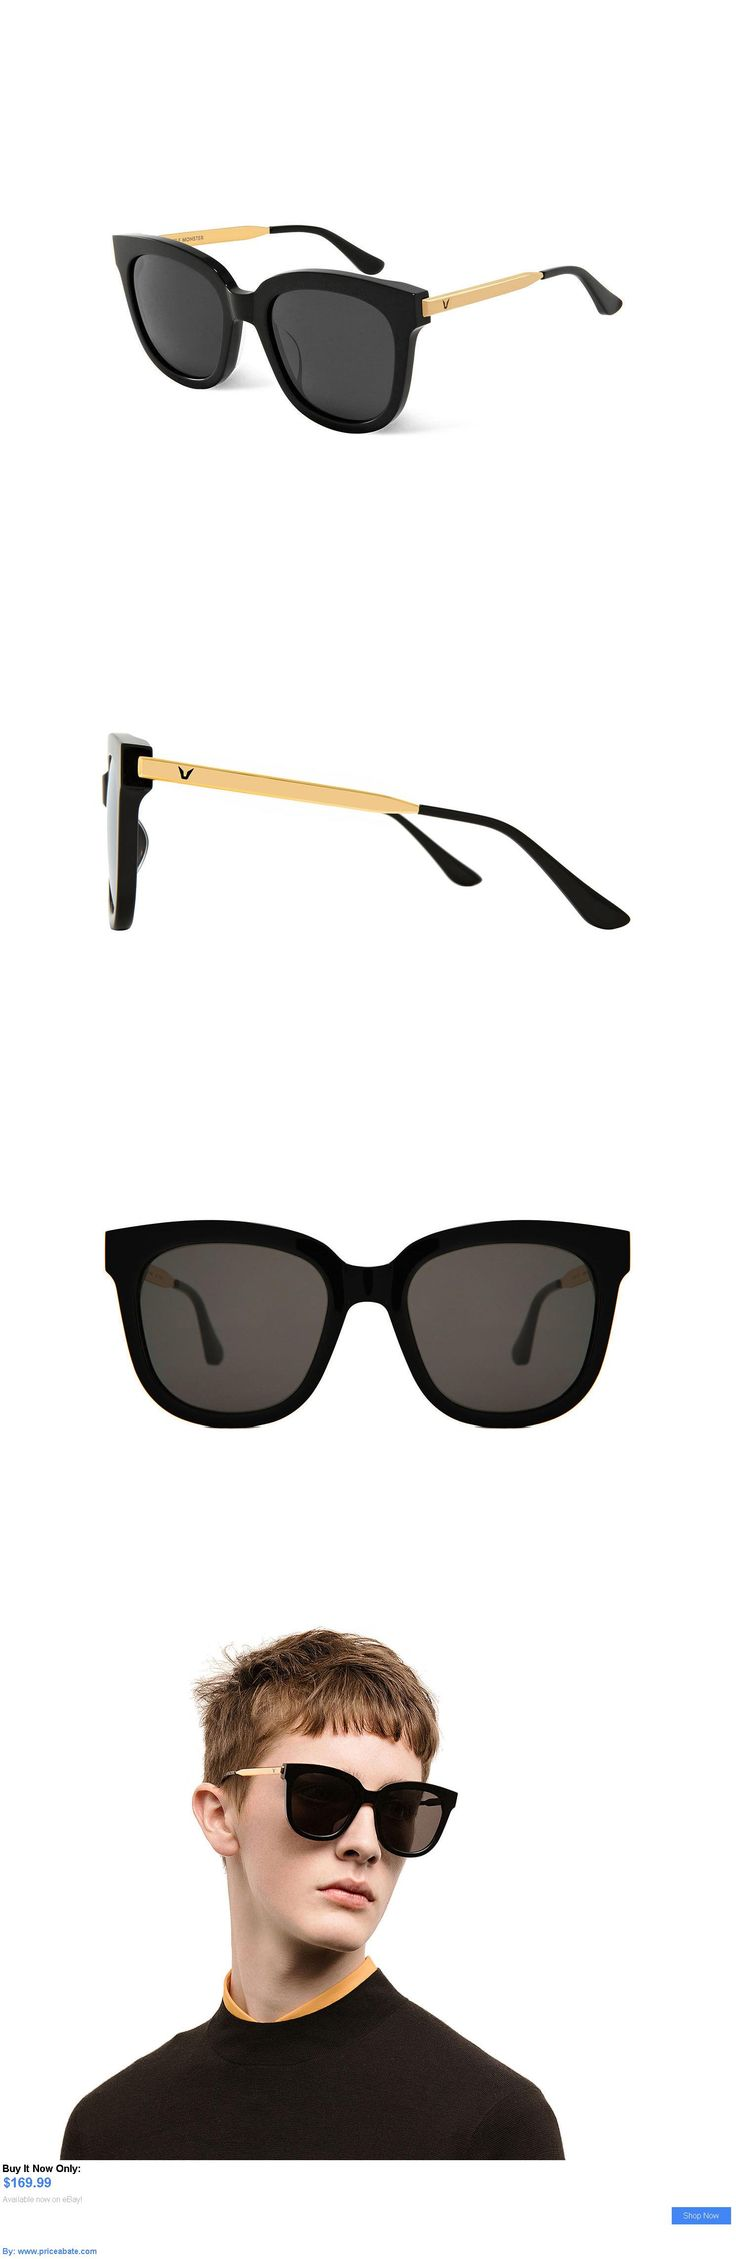 Women Accessories: Brand New Authentic 2016 Gentle Monster Sunglasses - Absente 01 Gold BUY IT NOW ONLY: $169.99 #priceabateWomenAccessories OR #priceabate